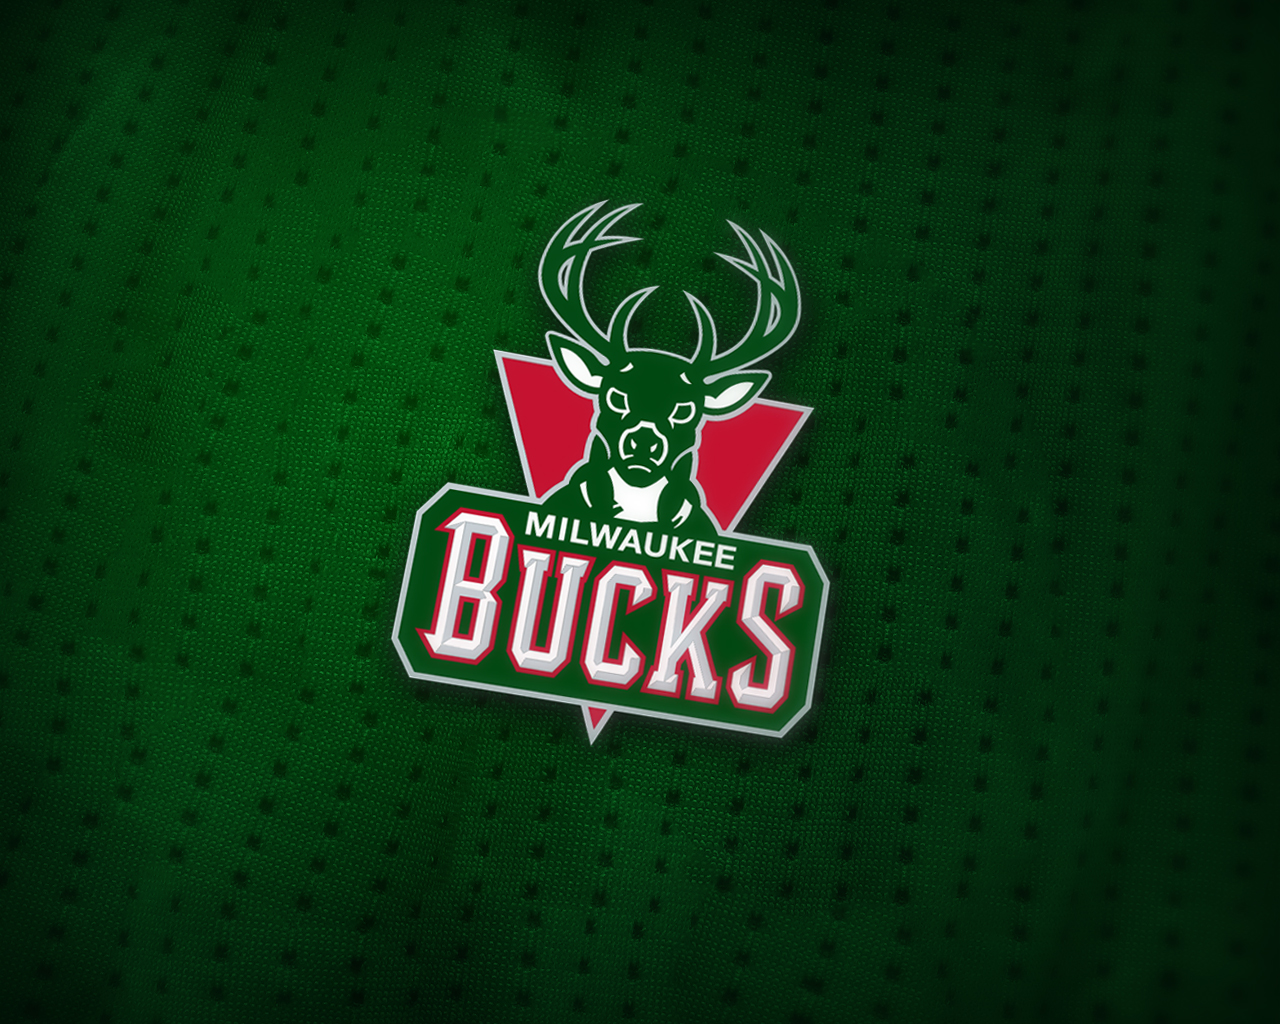 Milwaukee Bucks Wallpaper